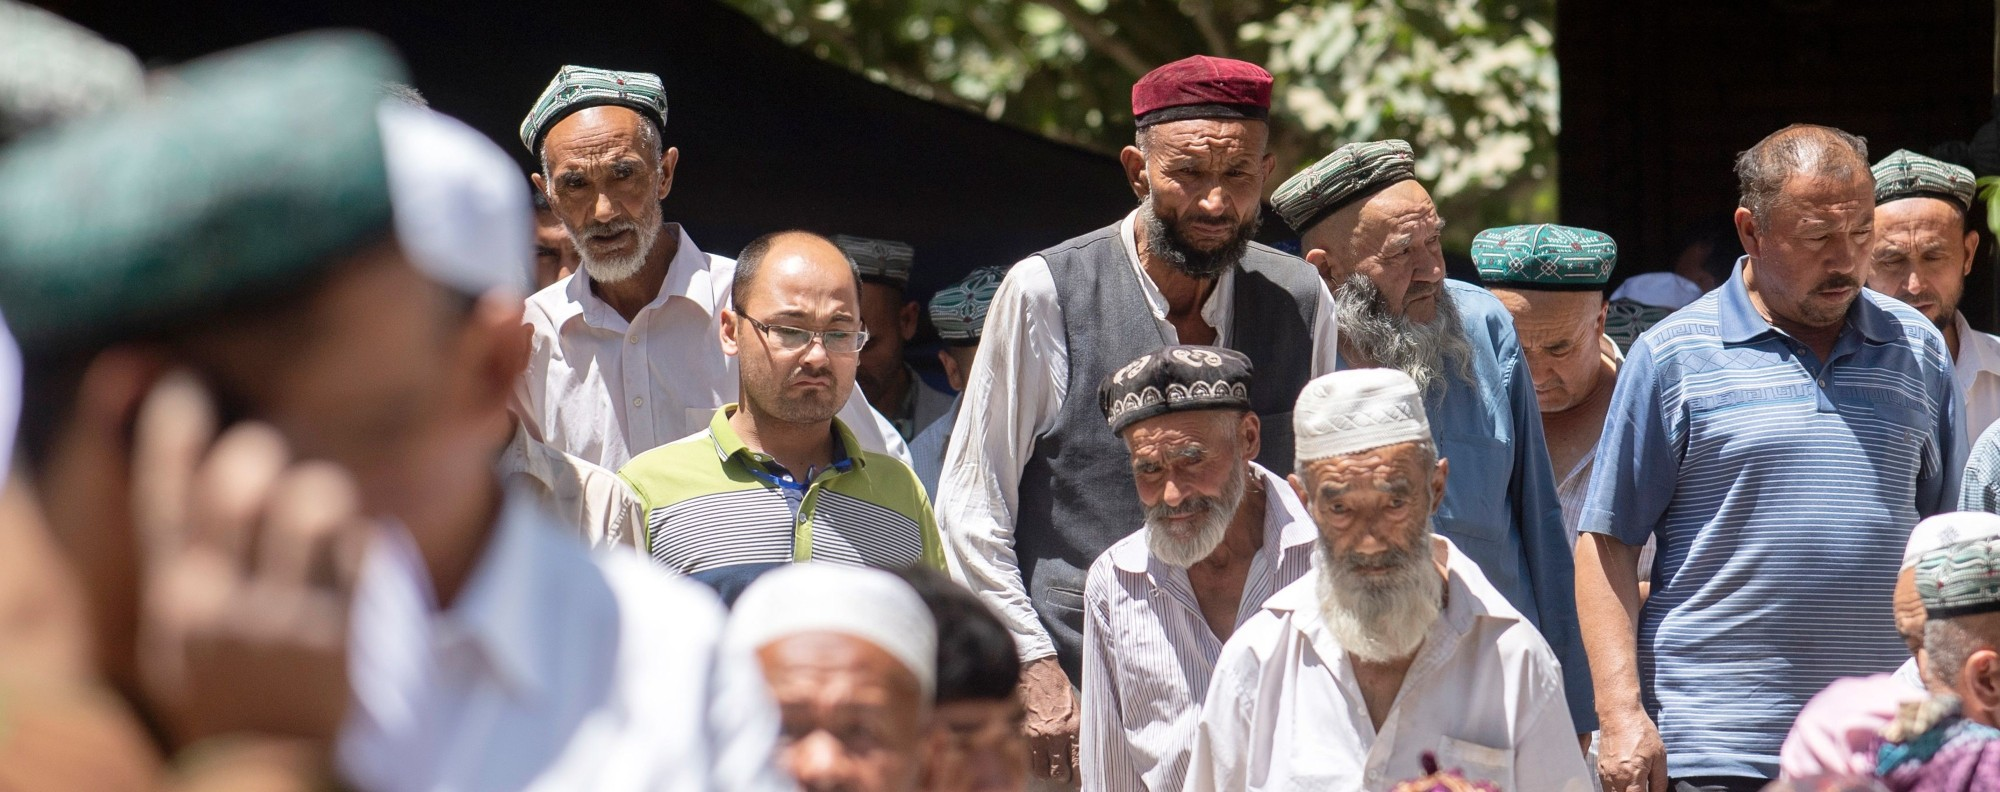 Muslims leave a mosque in Hotan, Xinjiang. Photo: AFP